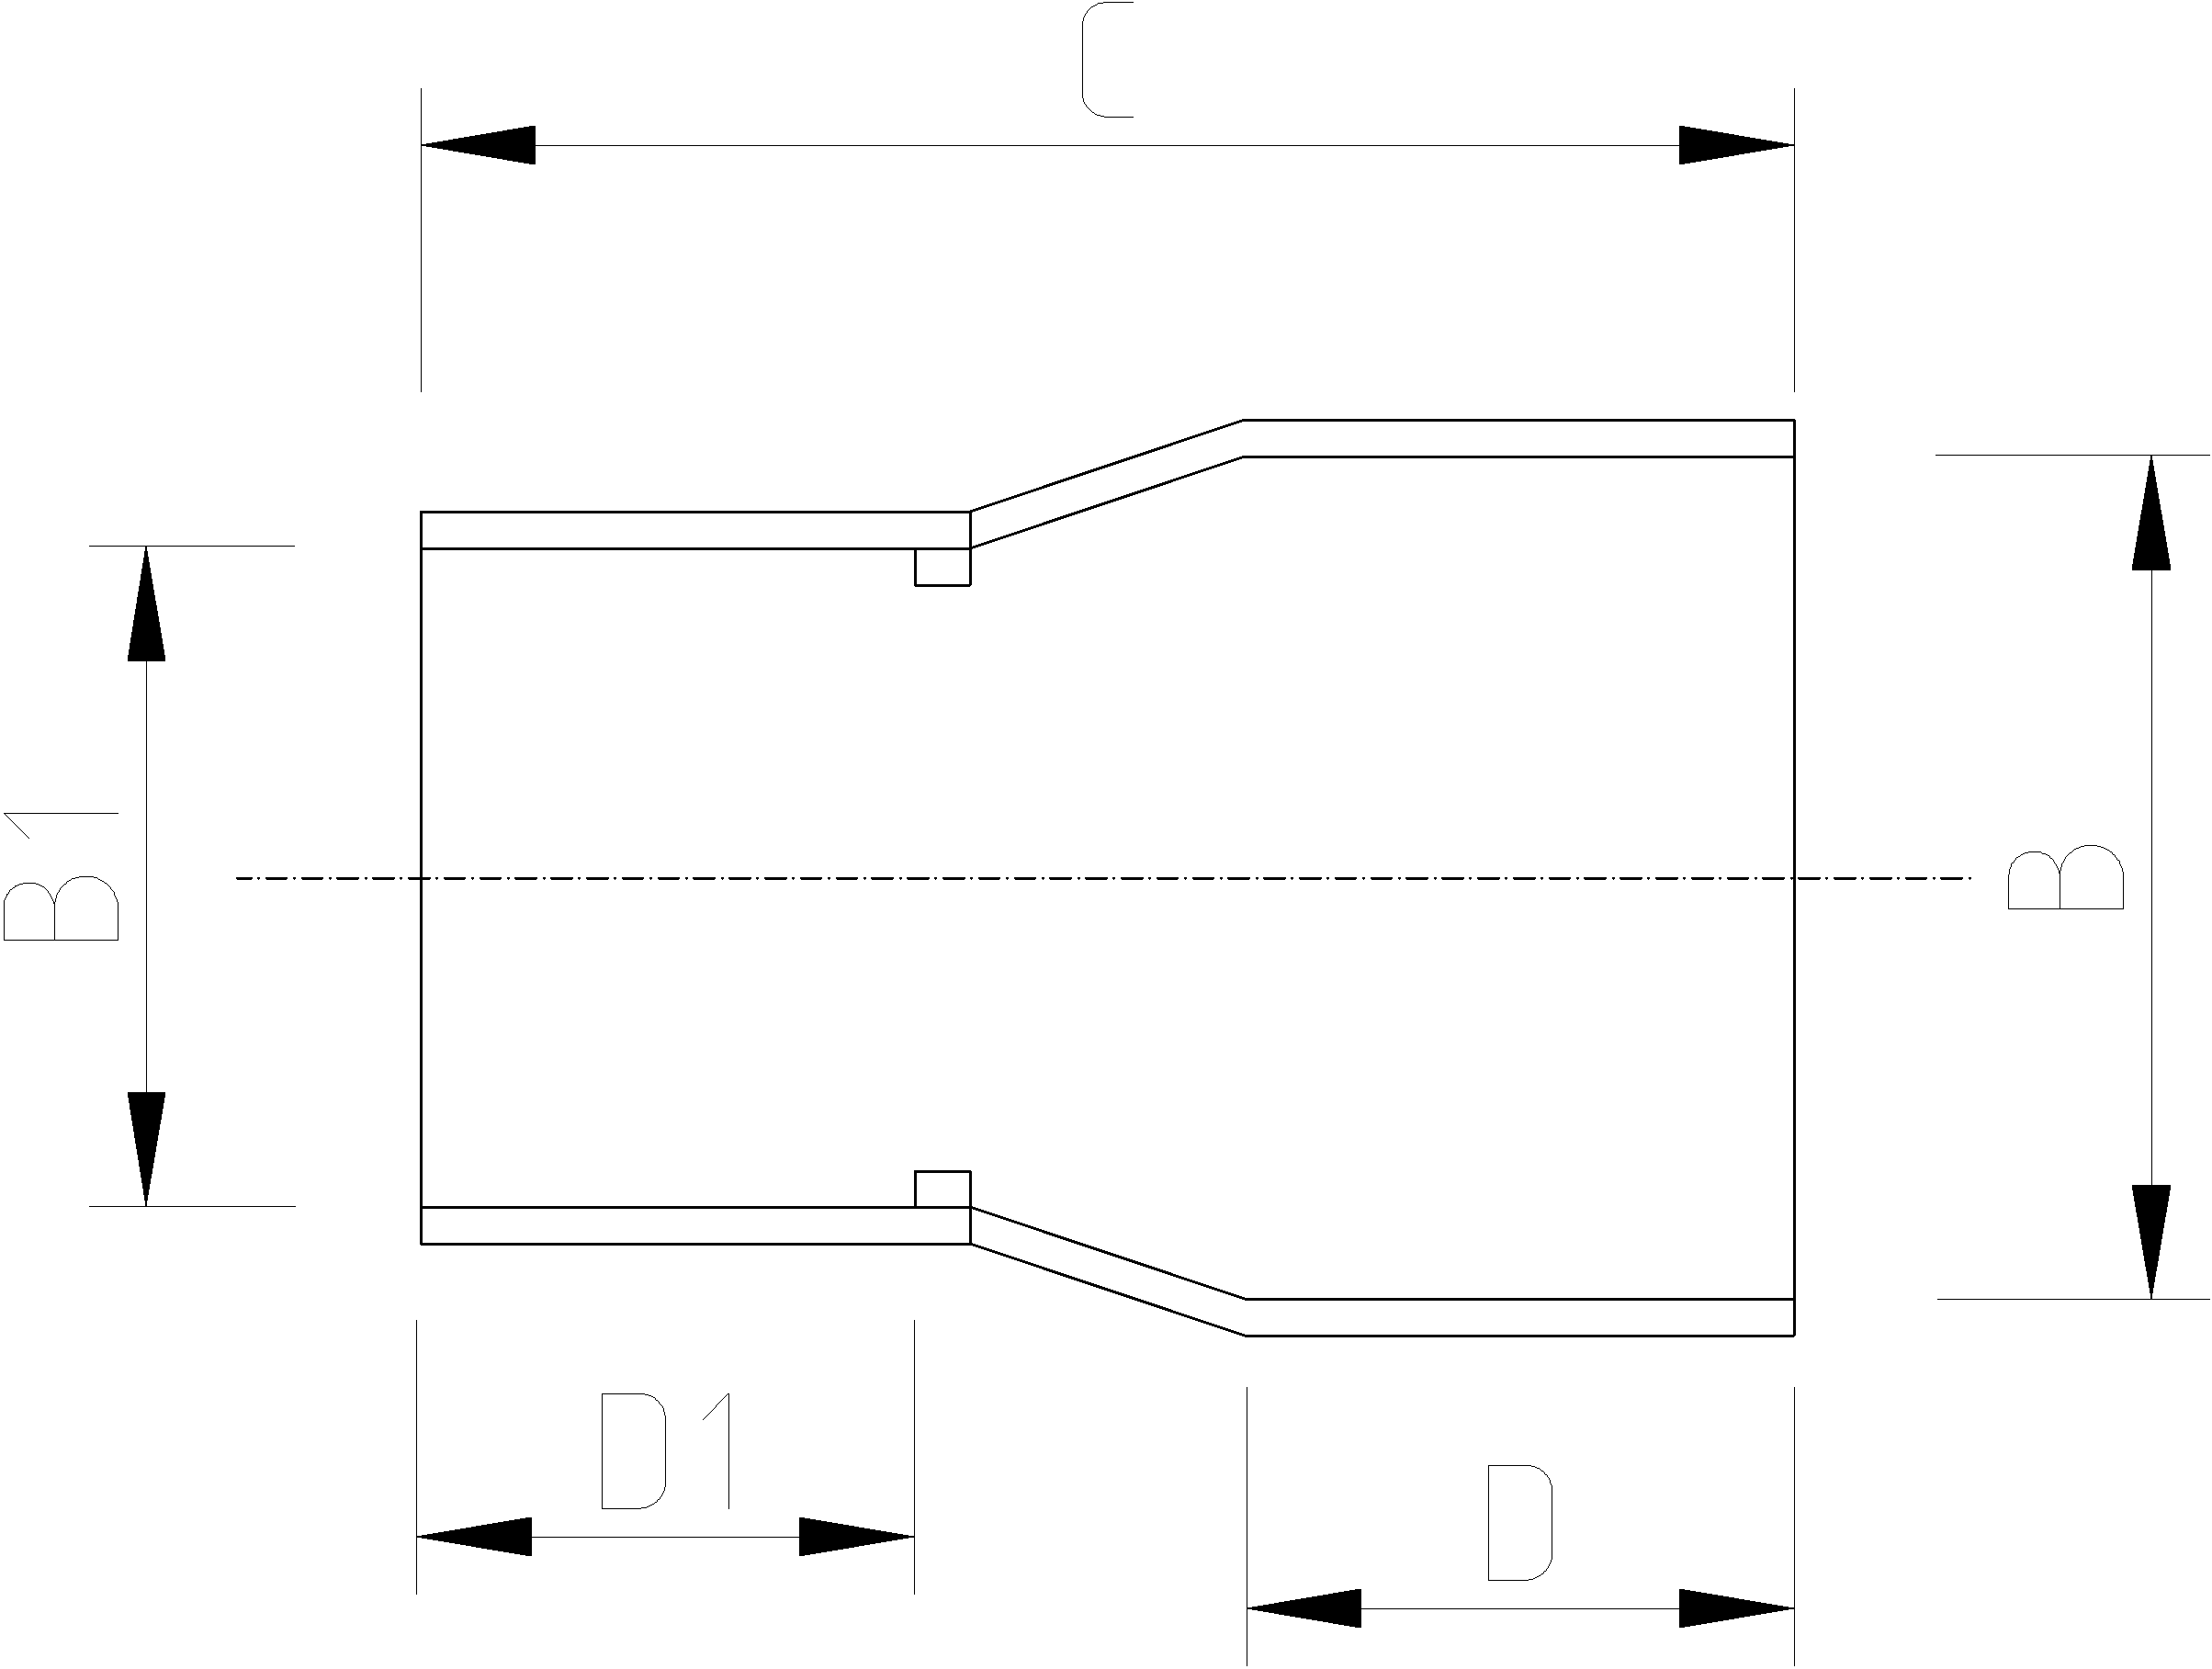 1 1/2 to 1 1/4 Inch Reducing Socket Dimensions Drawing